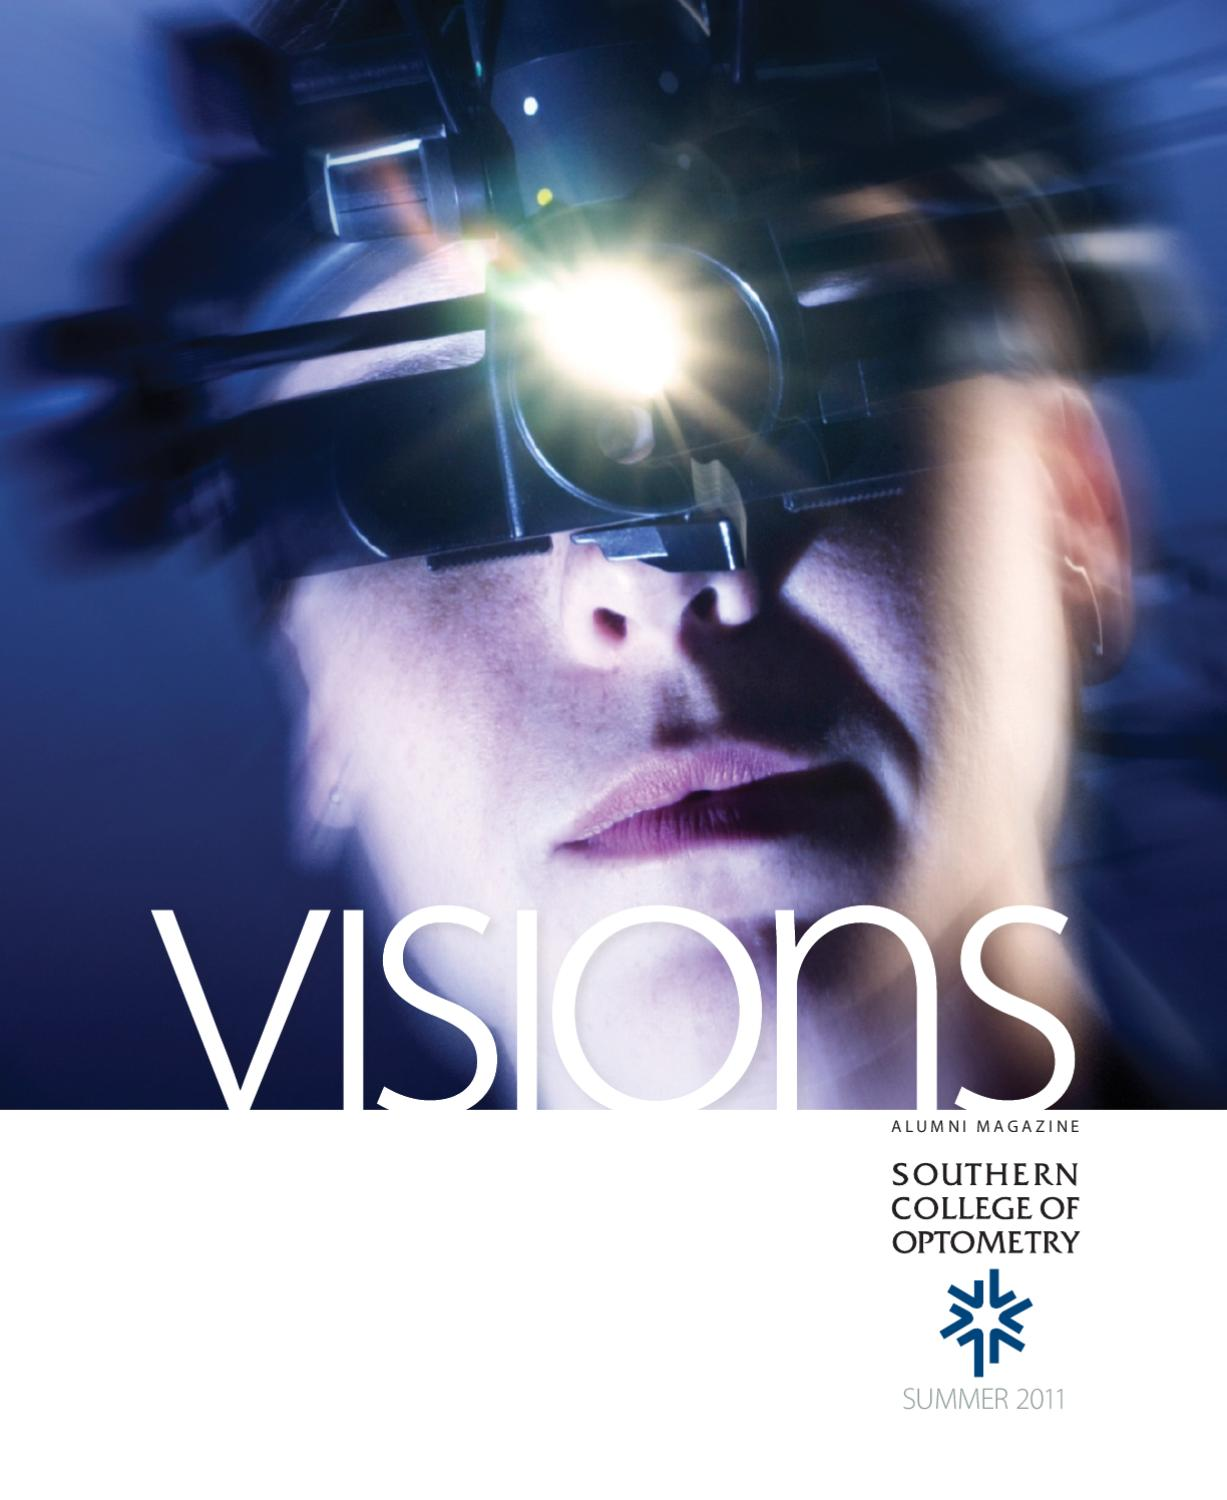 visions alumni magazine - summer 2011 - southern college of